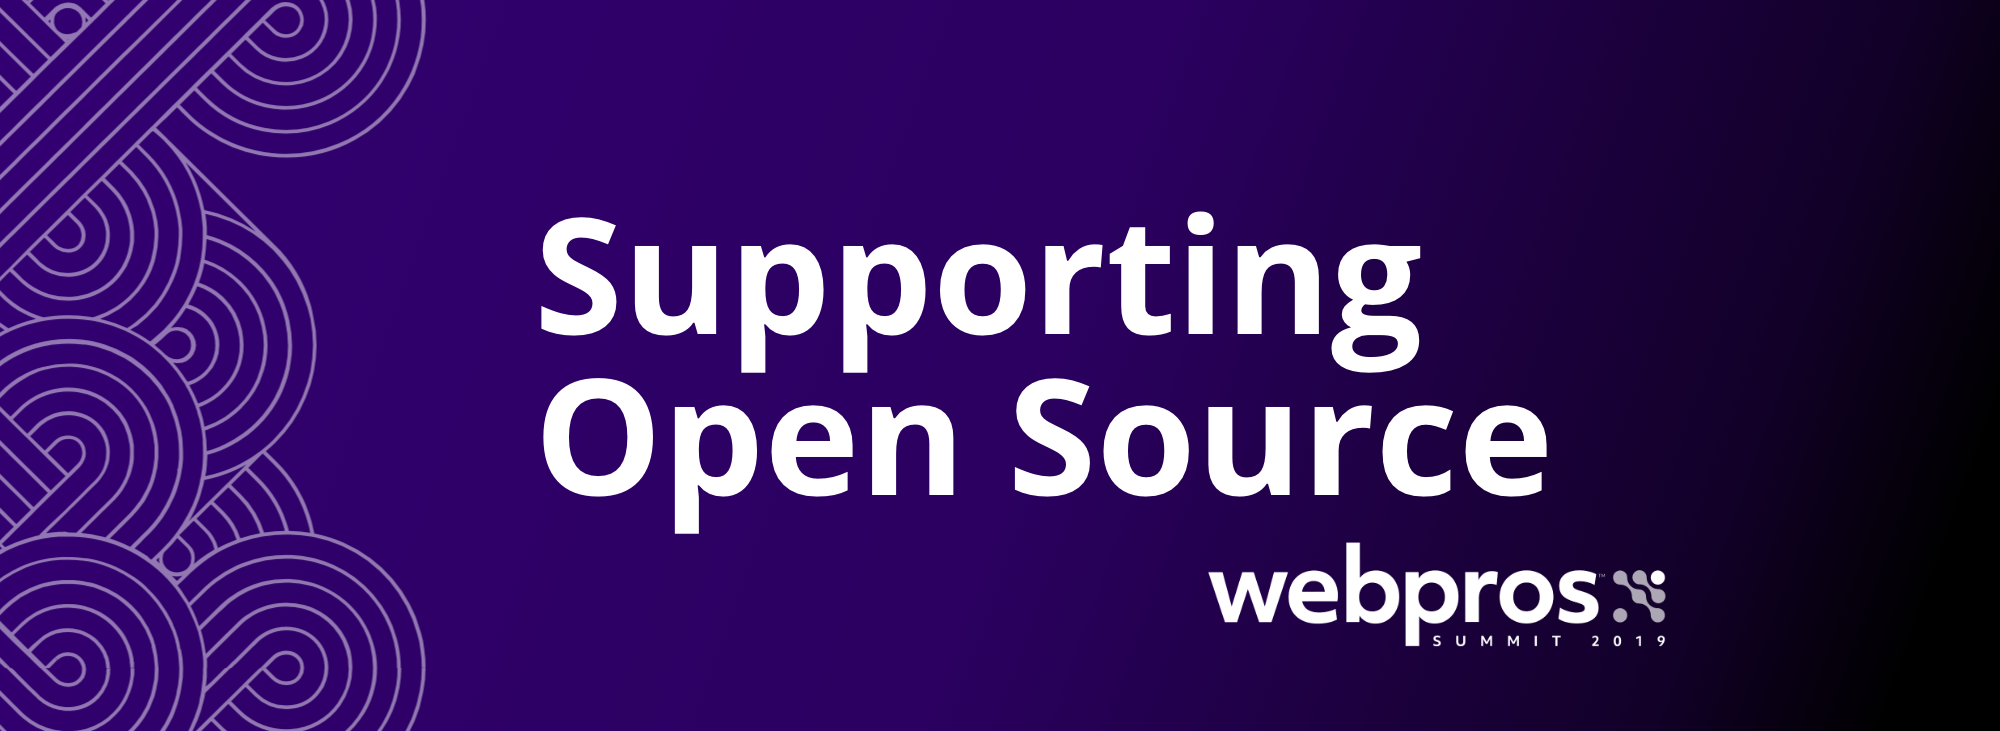 Supporting Open Source - WebPros Summit 2019